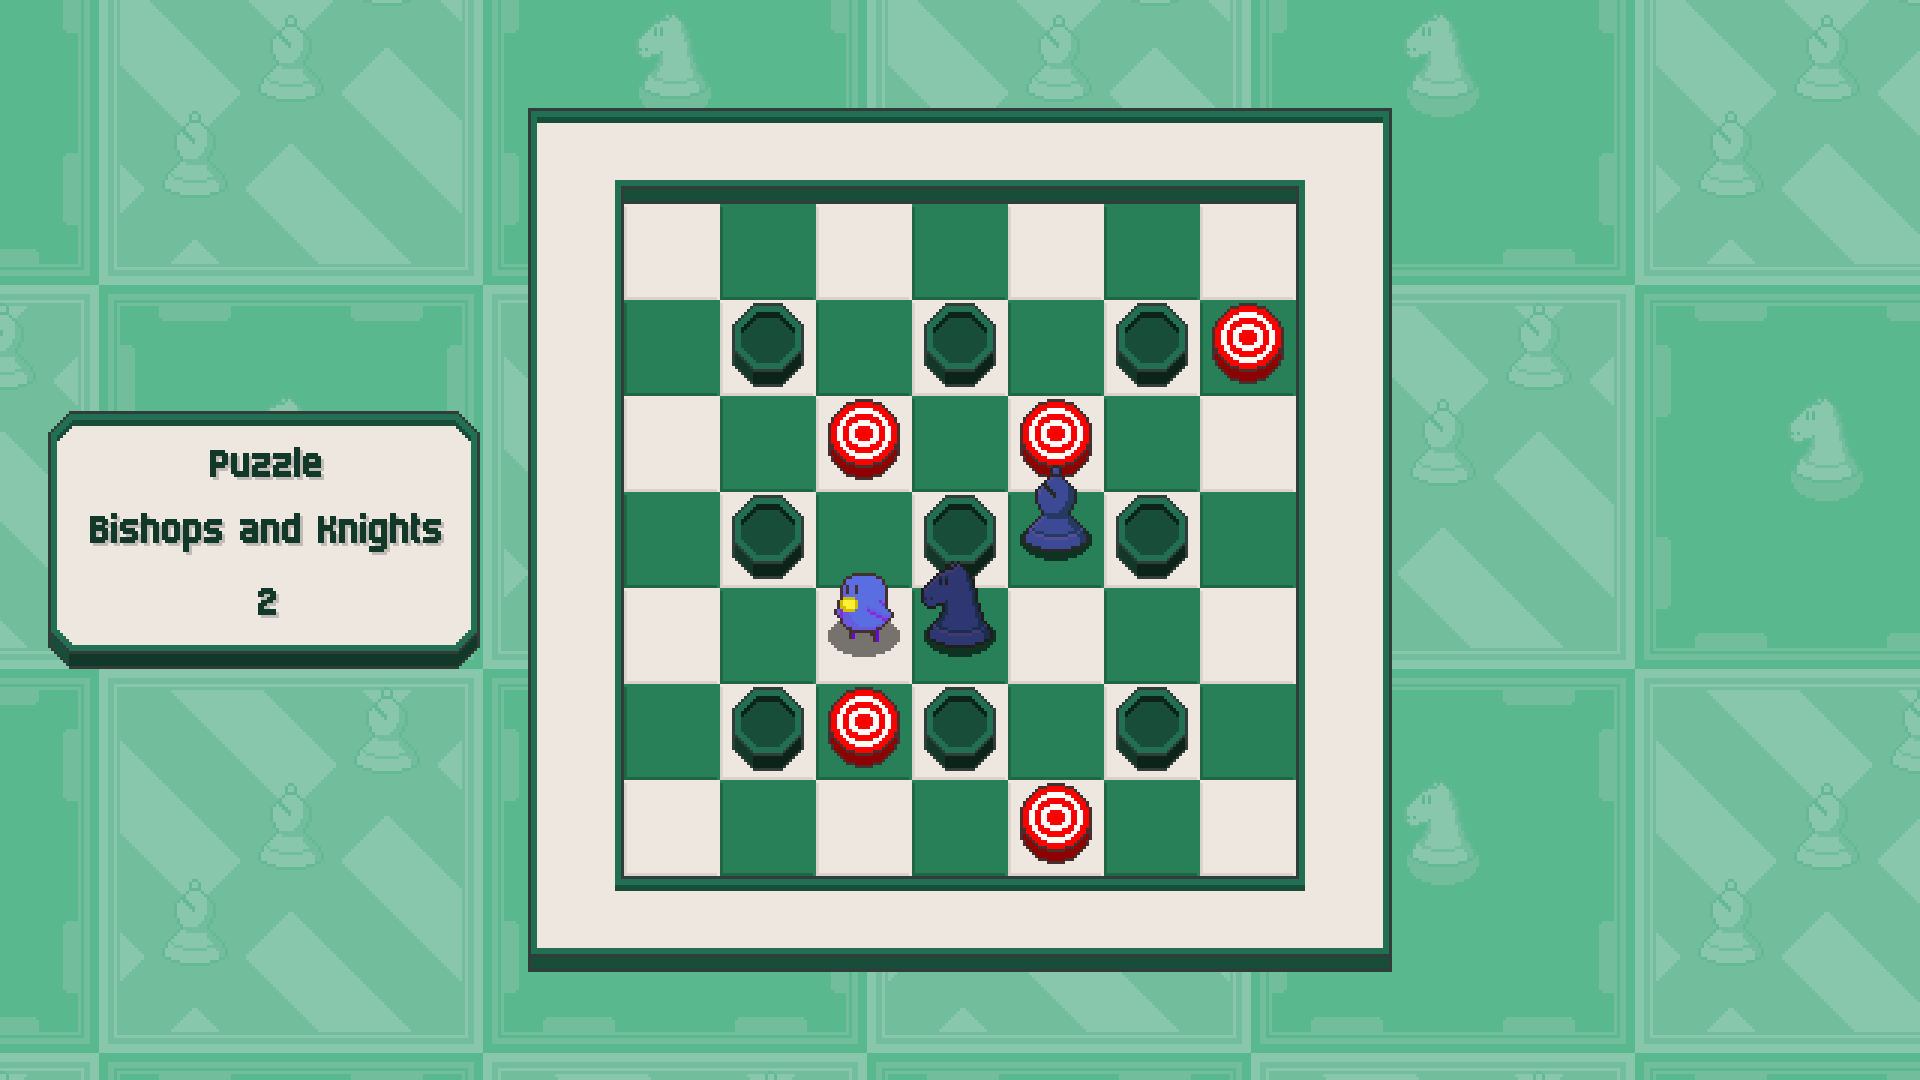 Chessplosion - Puzzle Solution Guide + Achievements Walkthrough - Grandblaster: Bishops and Knights - D29BE98